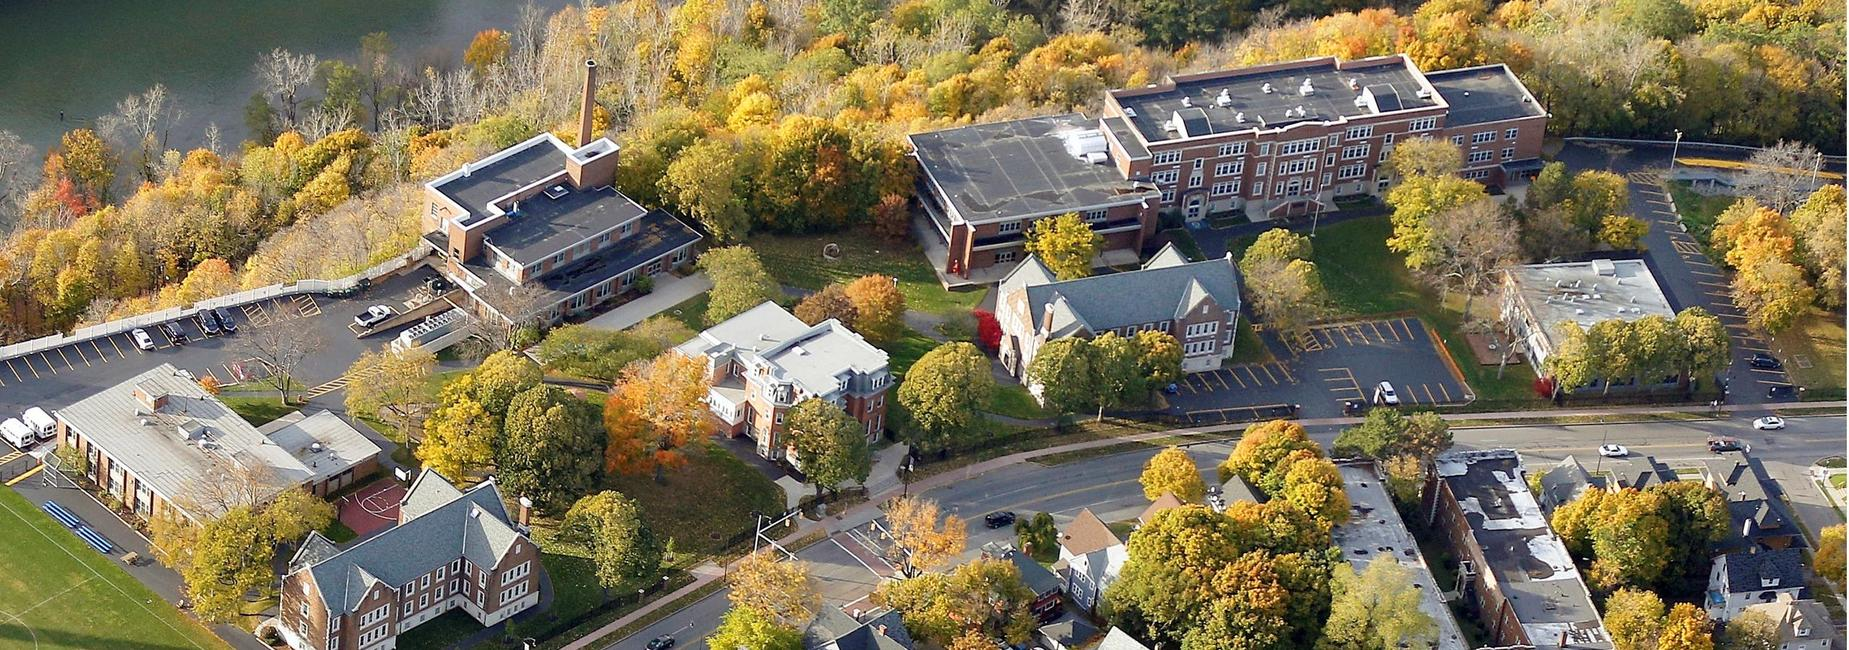 RSD Campus Aerial Photo